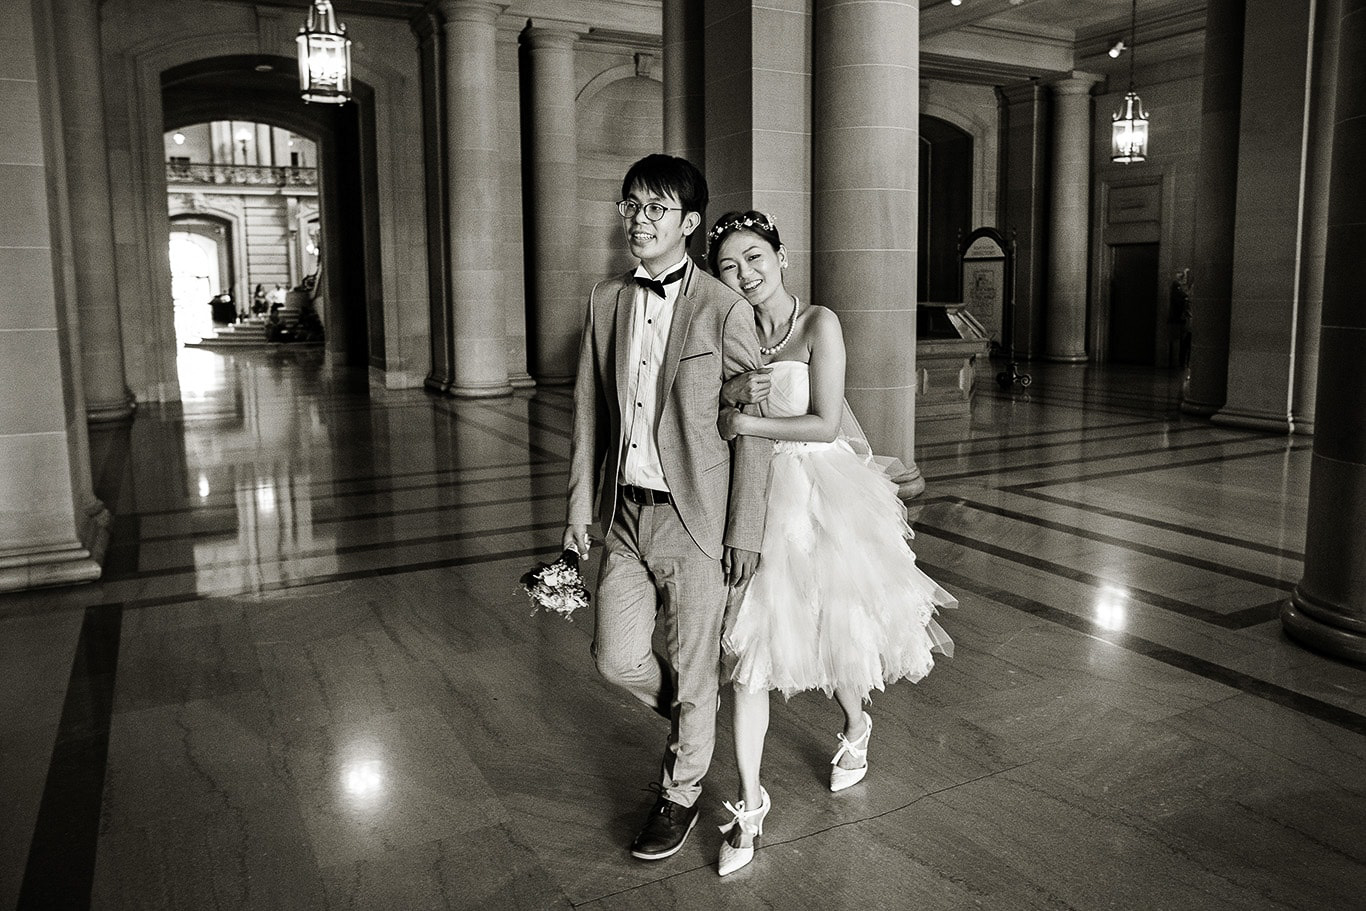 Wedding Day Photo at City Hall